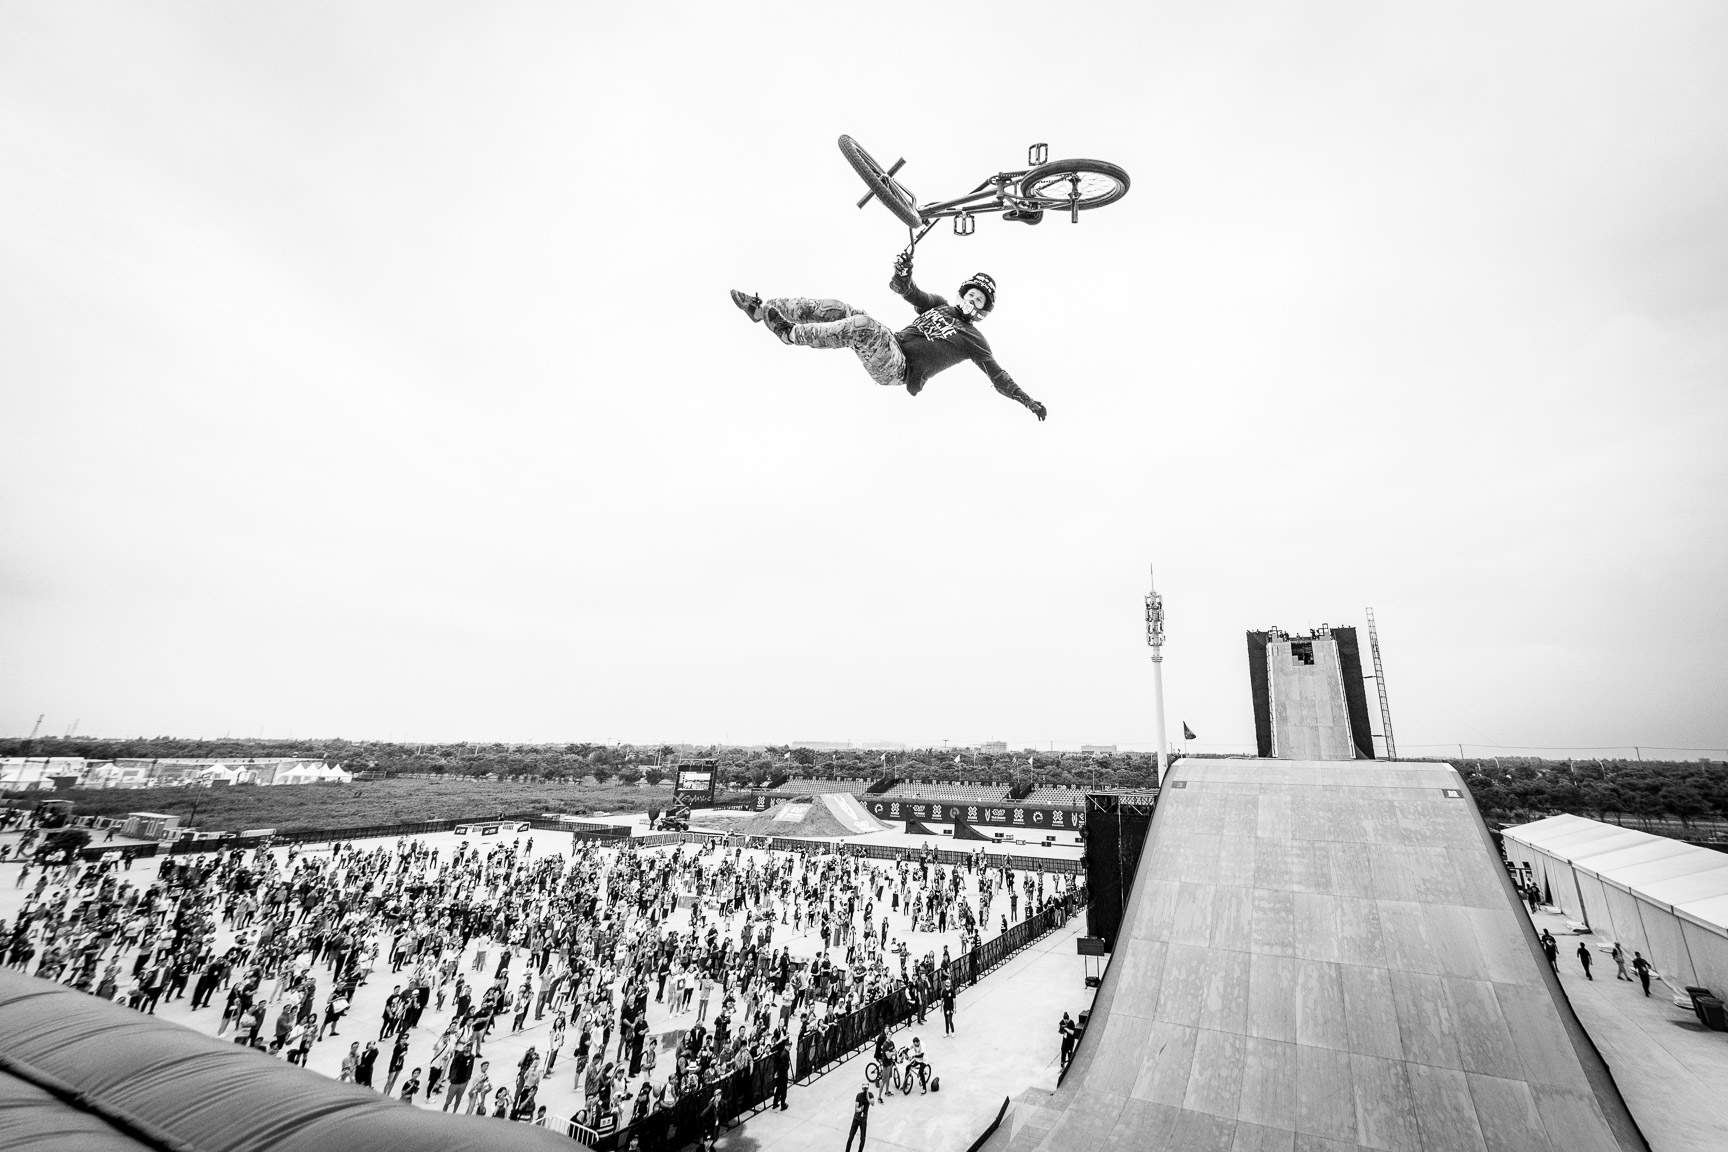 X Games Shanghai 2019: Morgan Wade